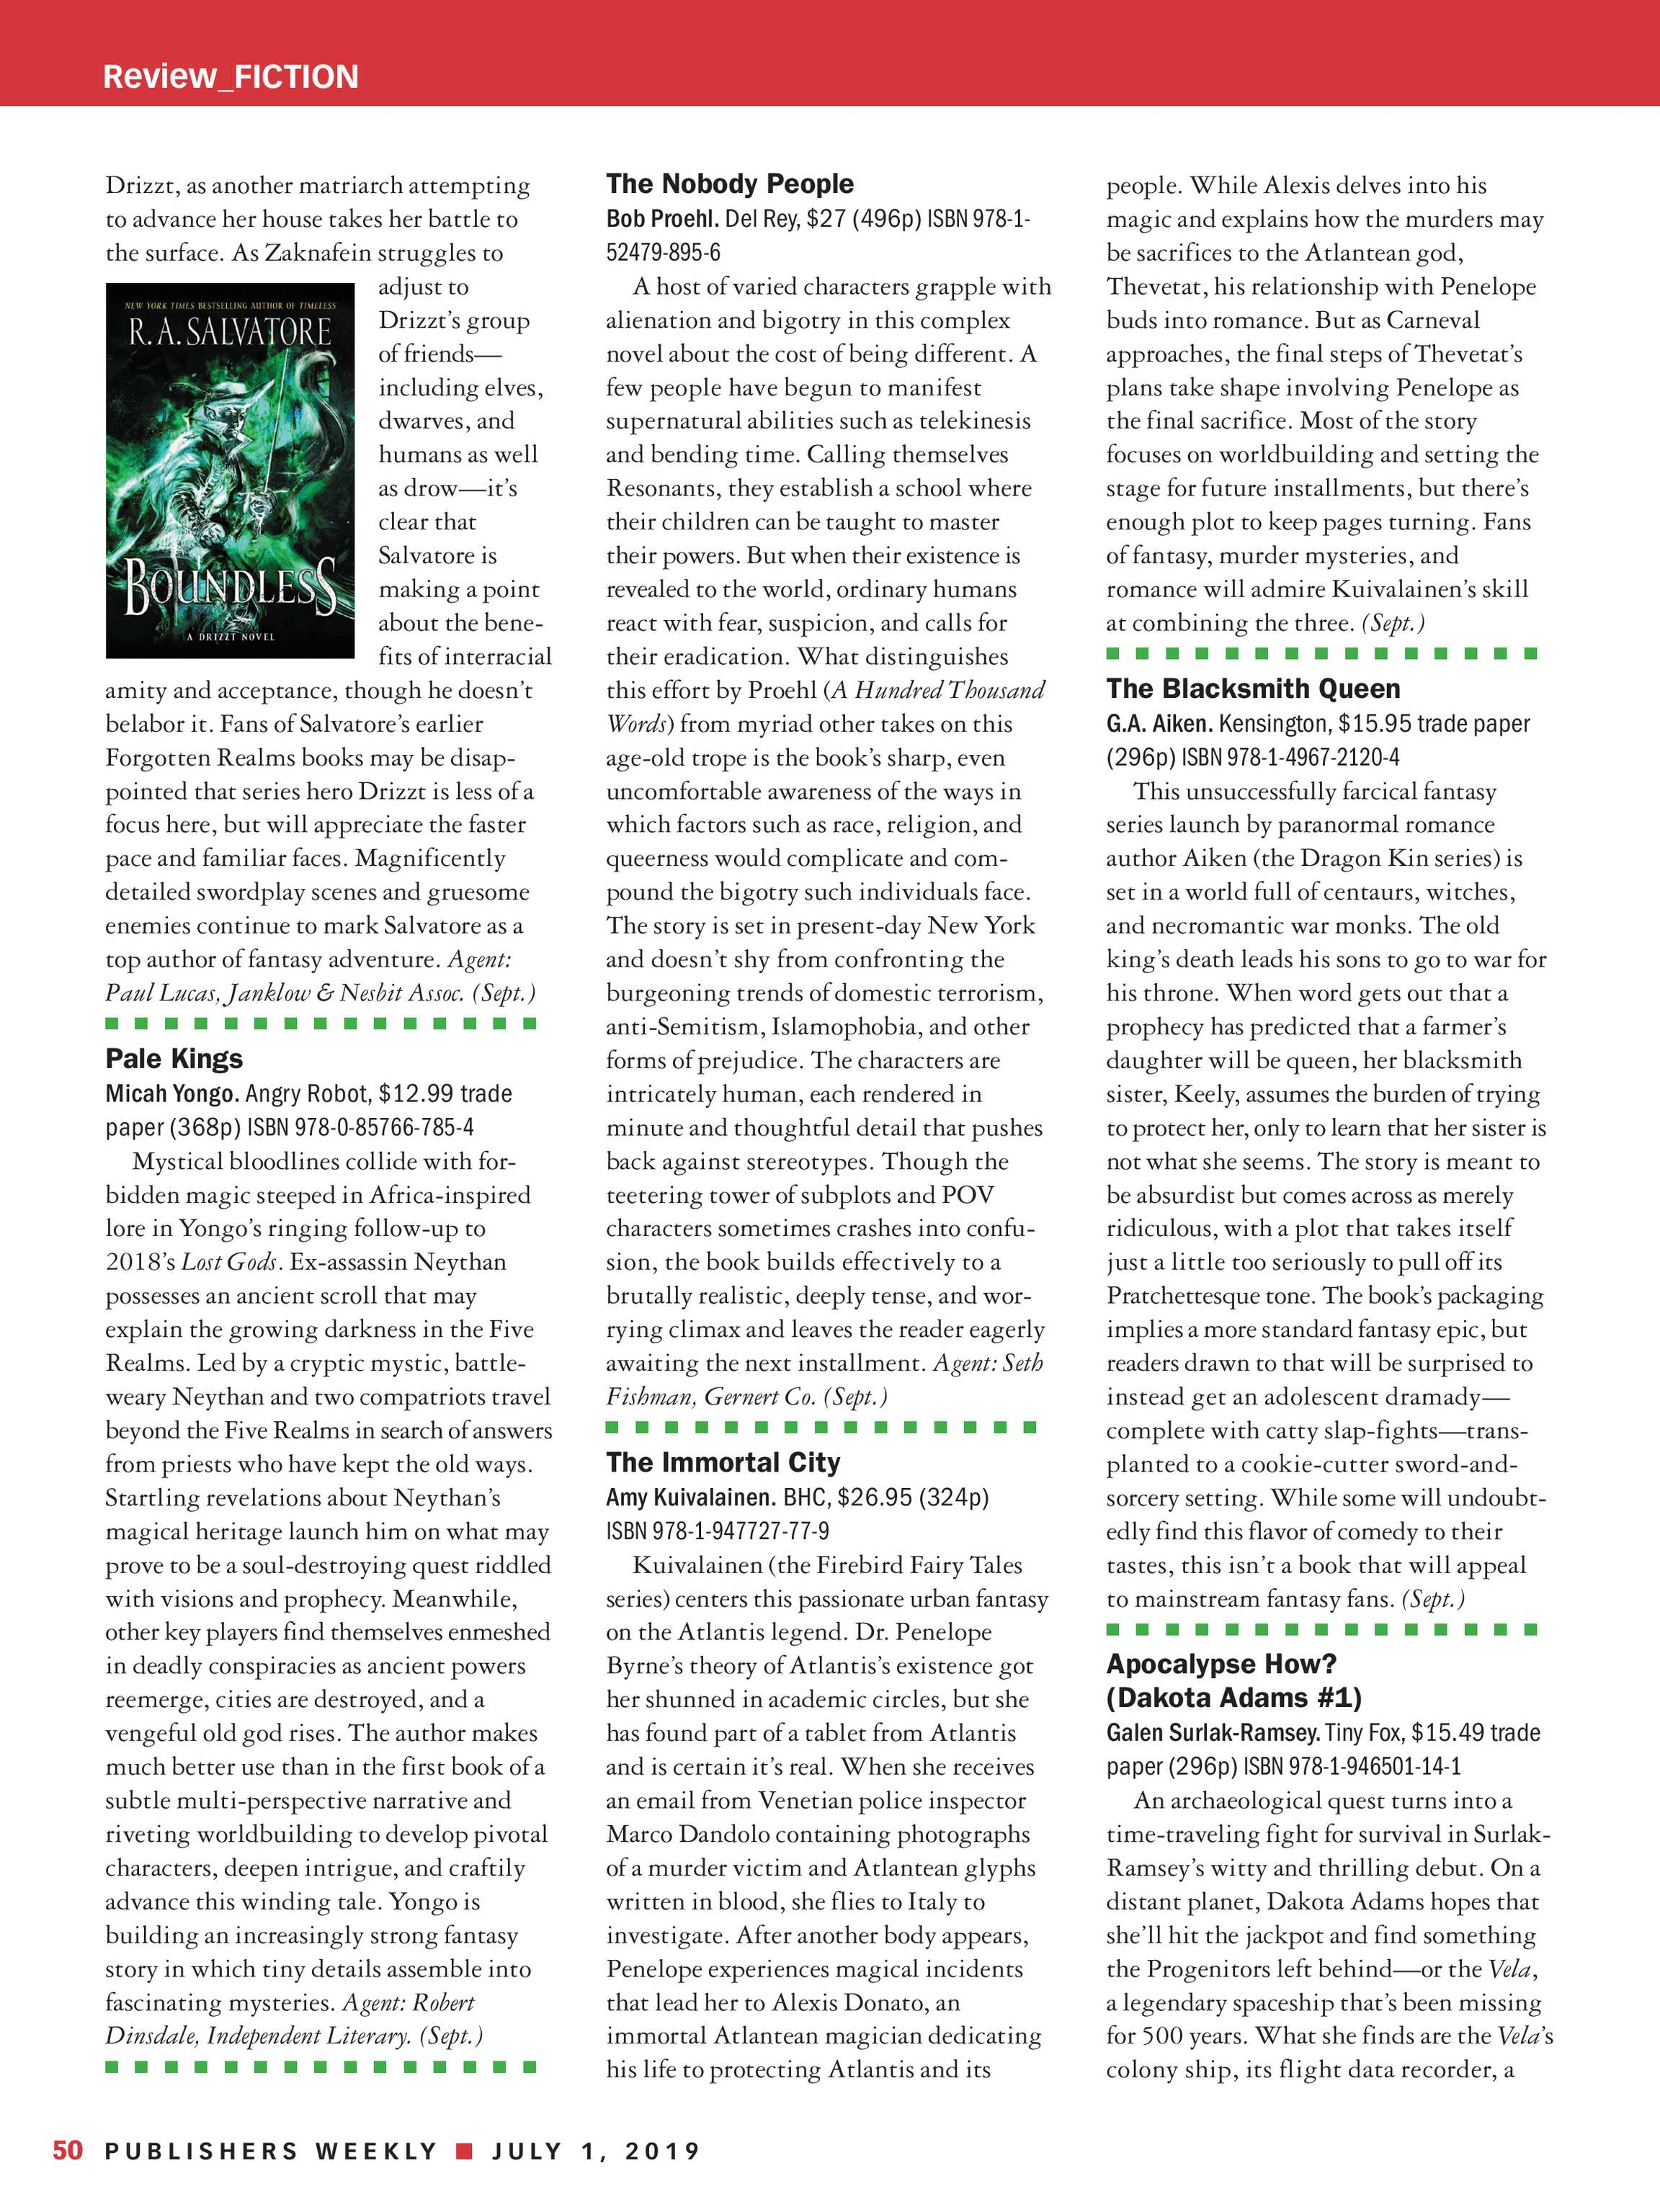 Publishers Weekly - July 1, 2019 - page 44